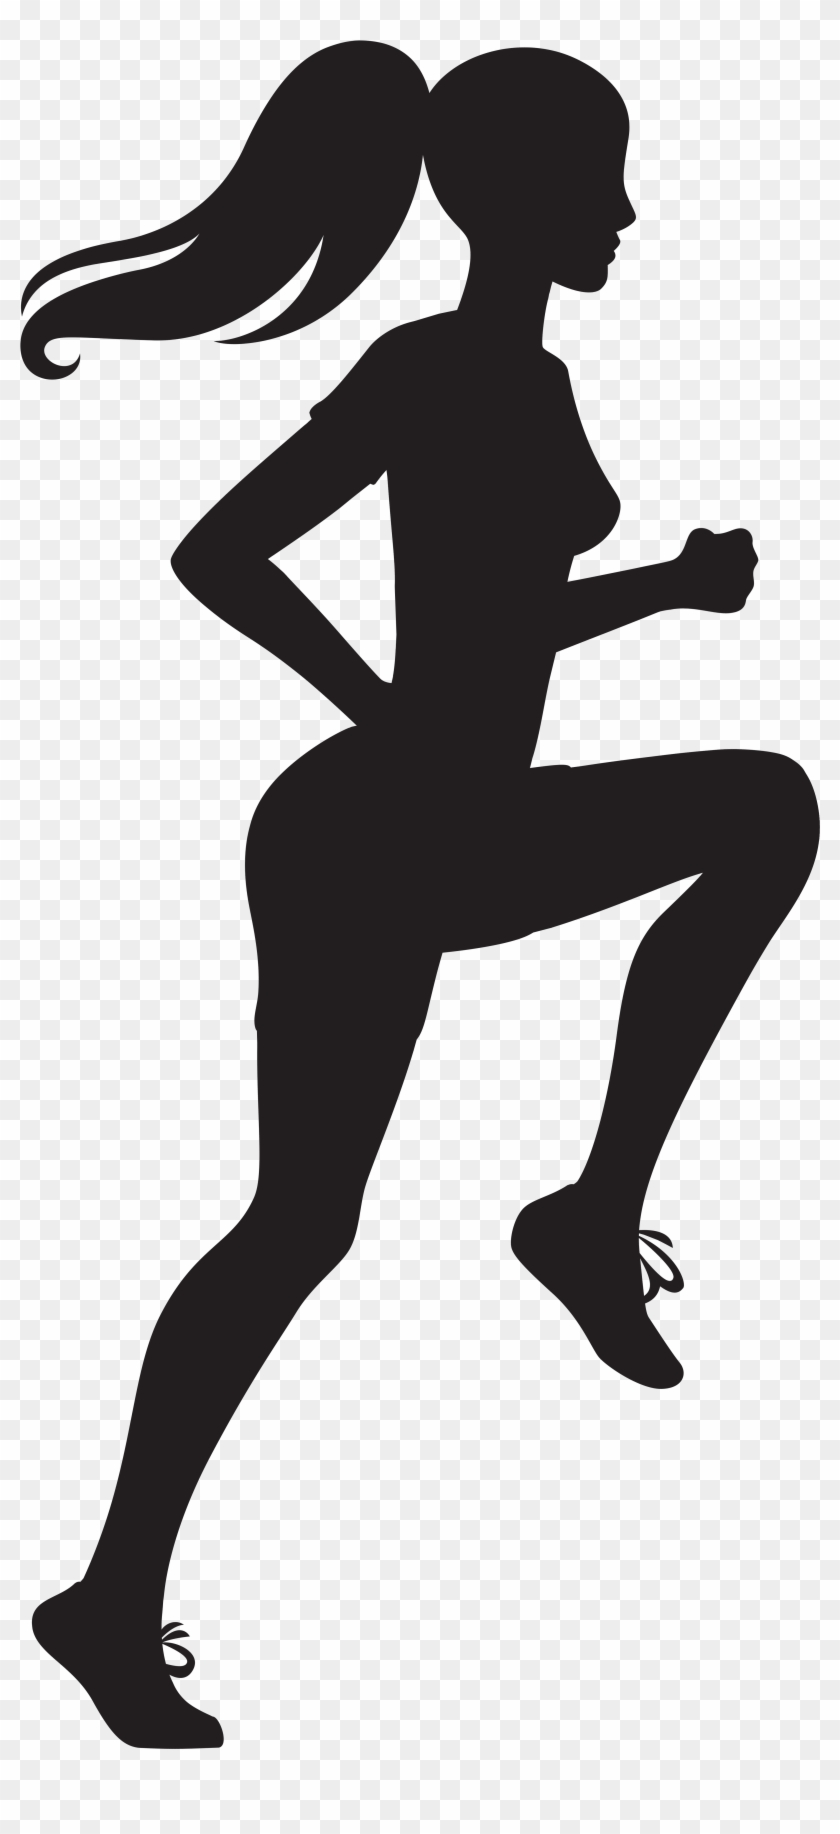 Running Woman Silhouette Transparent Image.